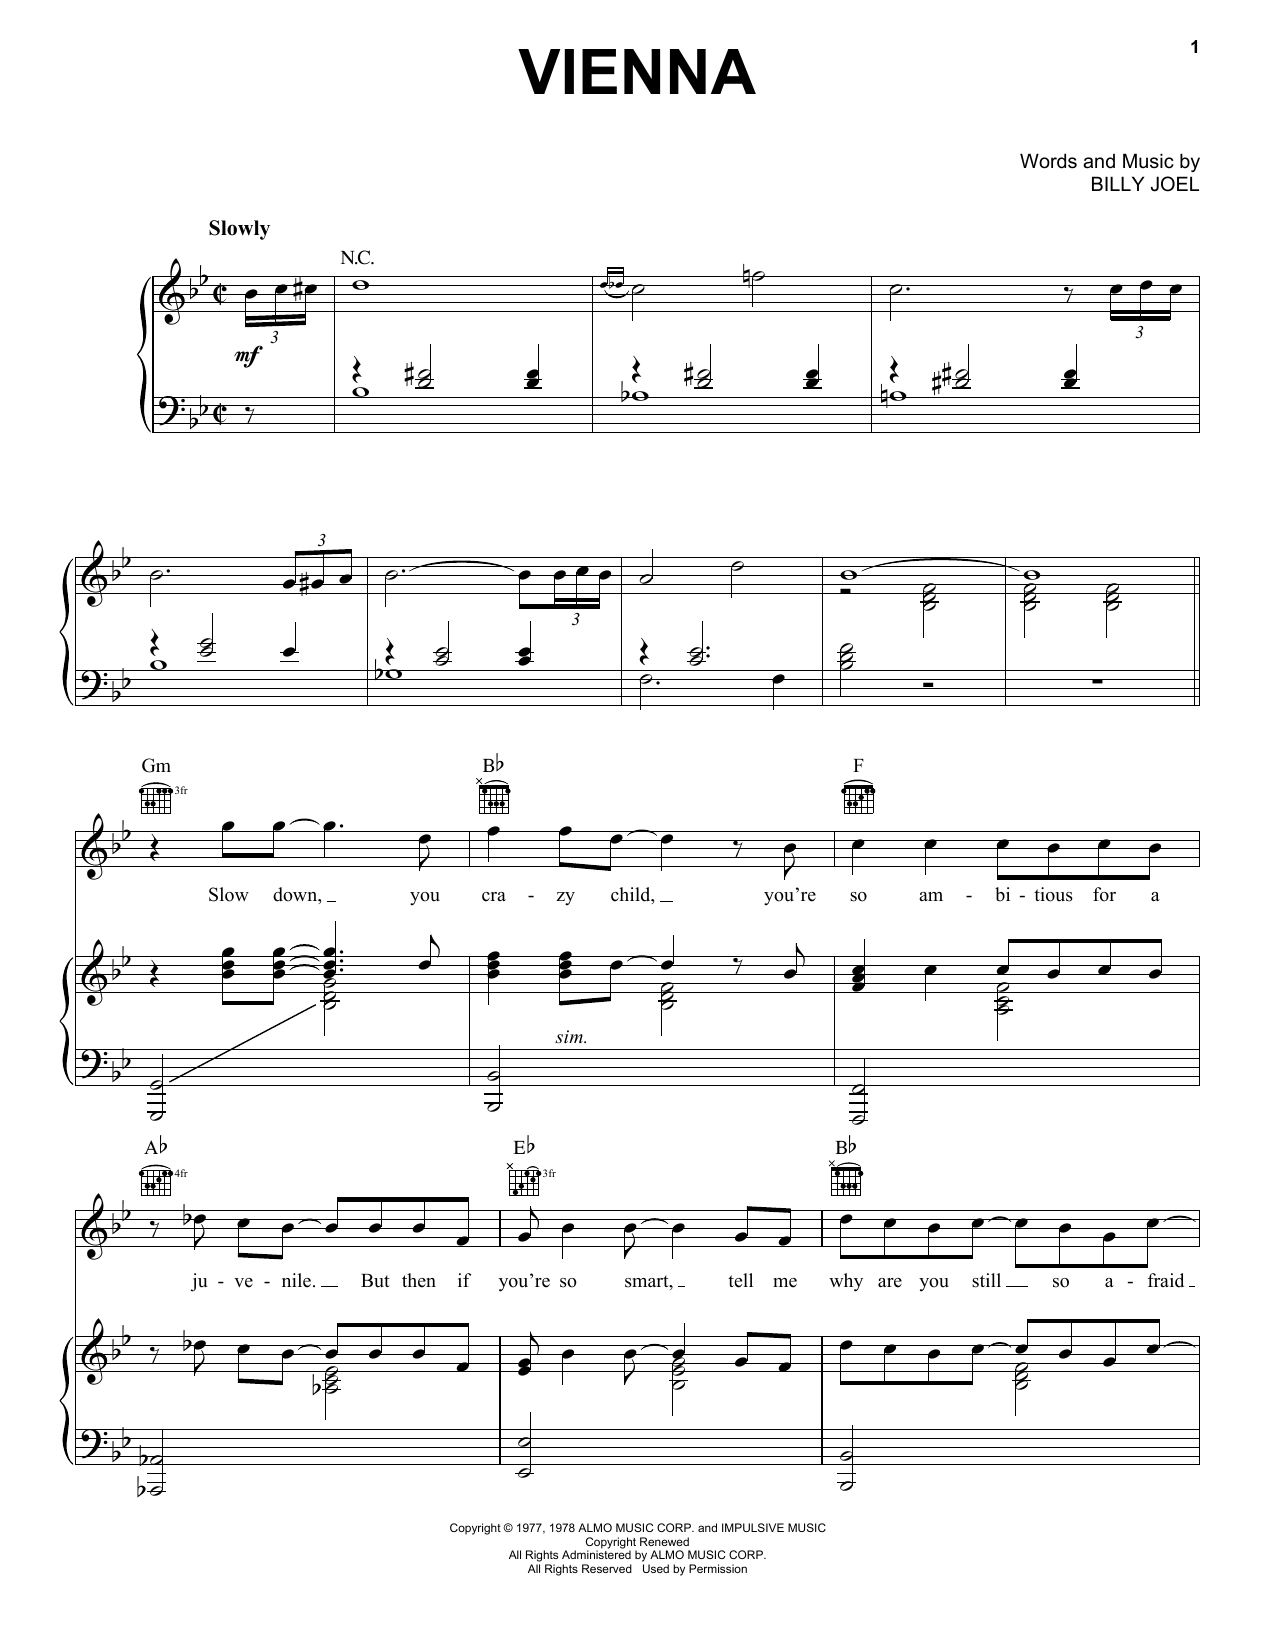 billy joel sheet music - Mersn.proforum.co